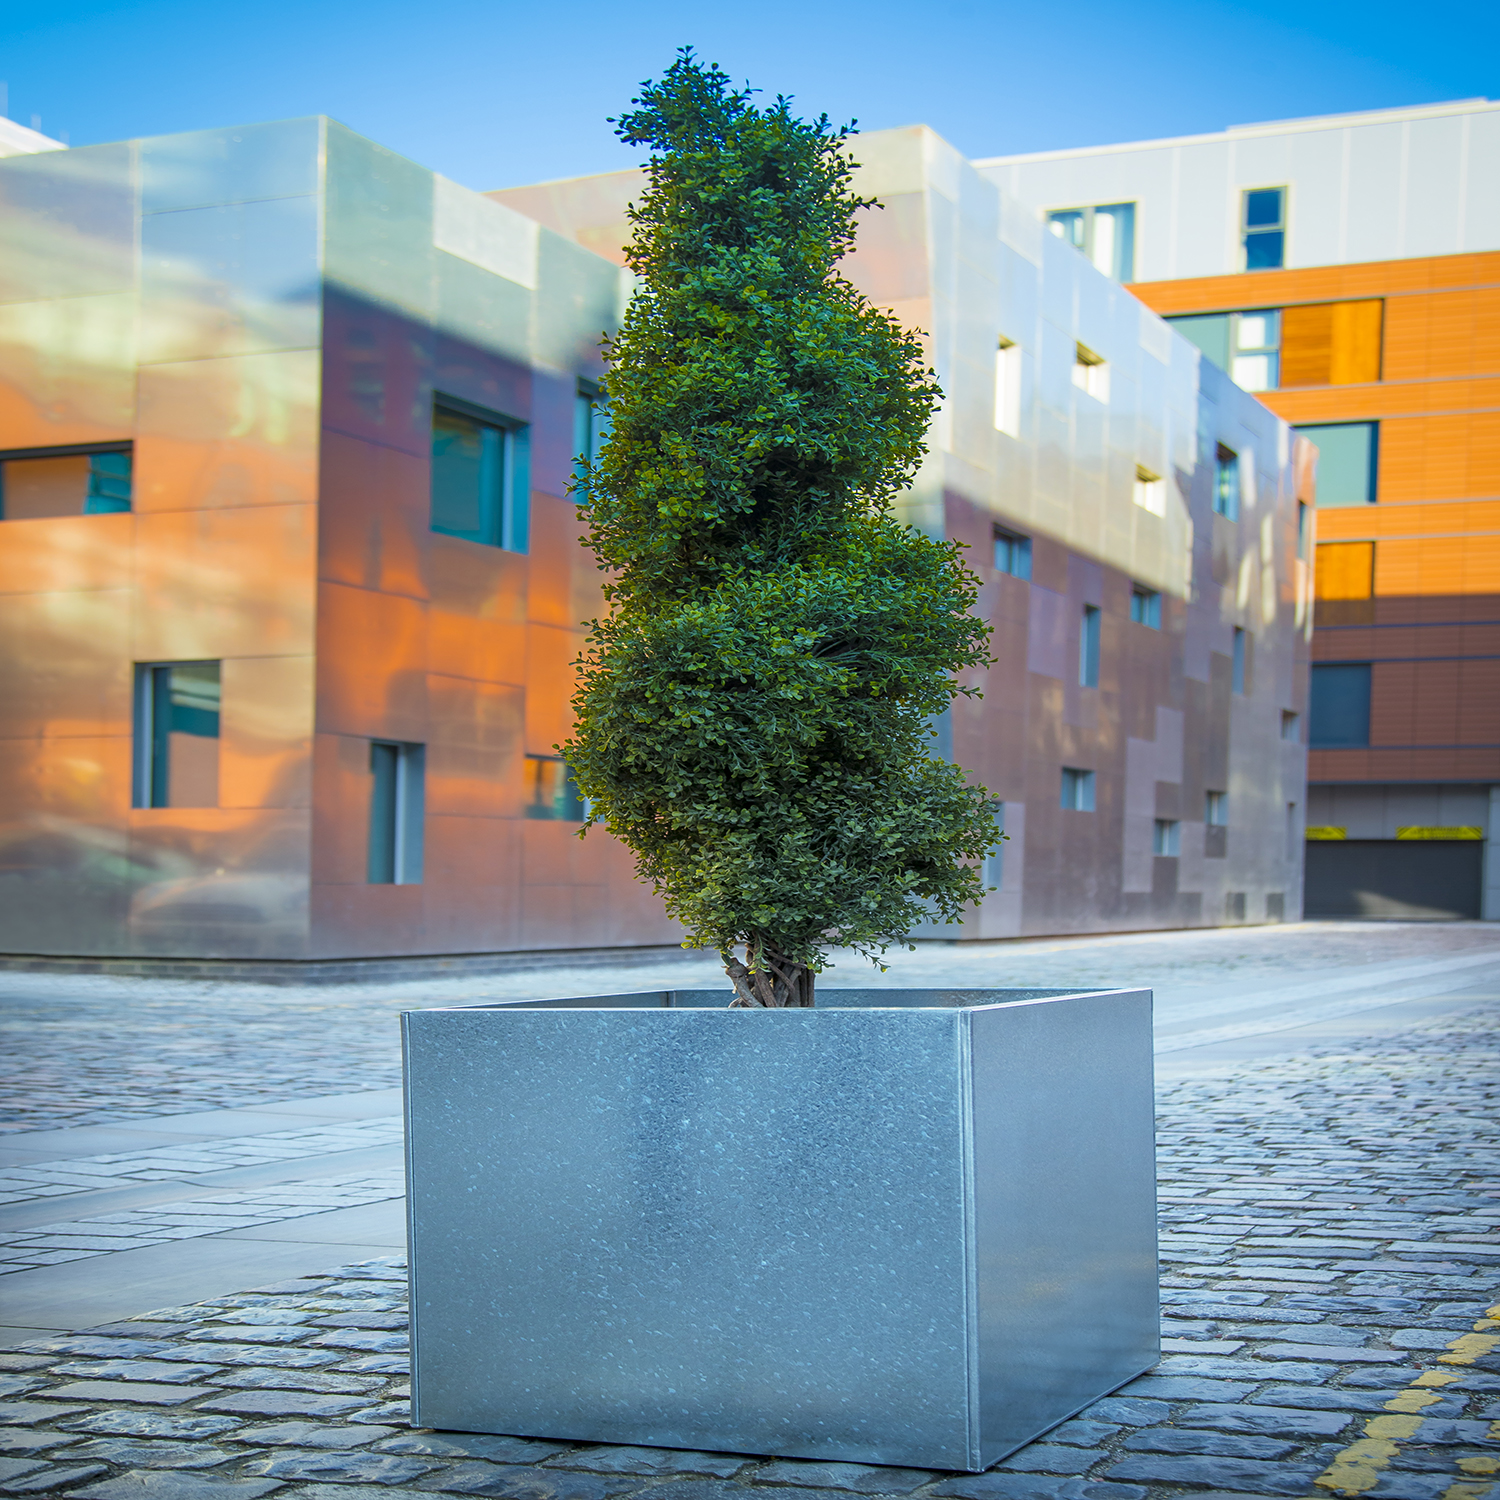 Metal Planters by Europlanters